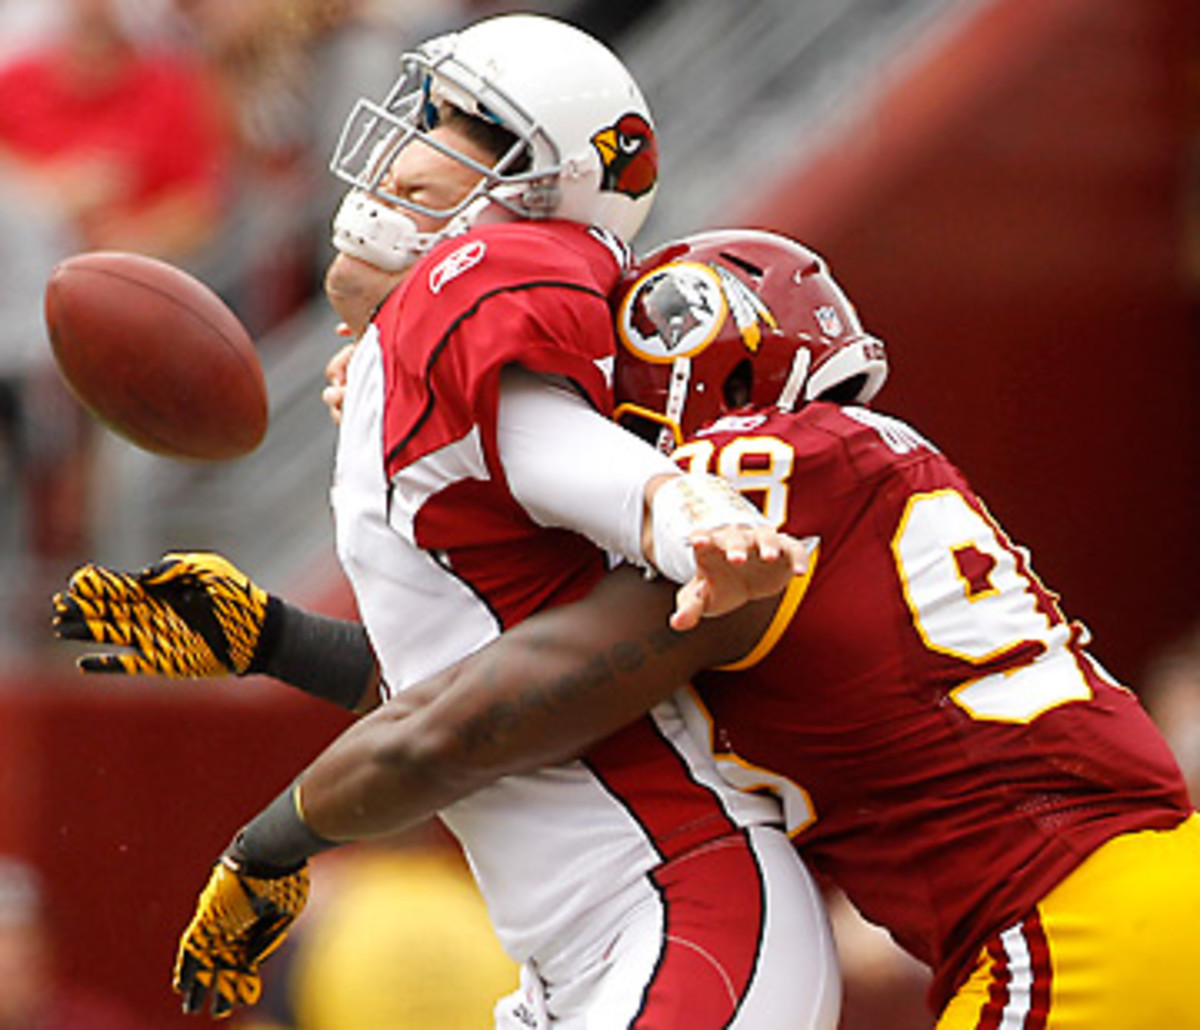 The Redskins are hoping linebacker Brian Orakpo can return healthy and put a hurting on quarterbacks.